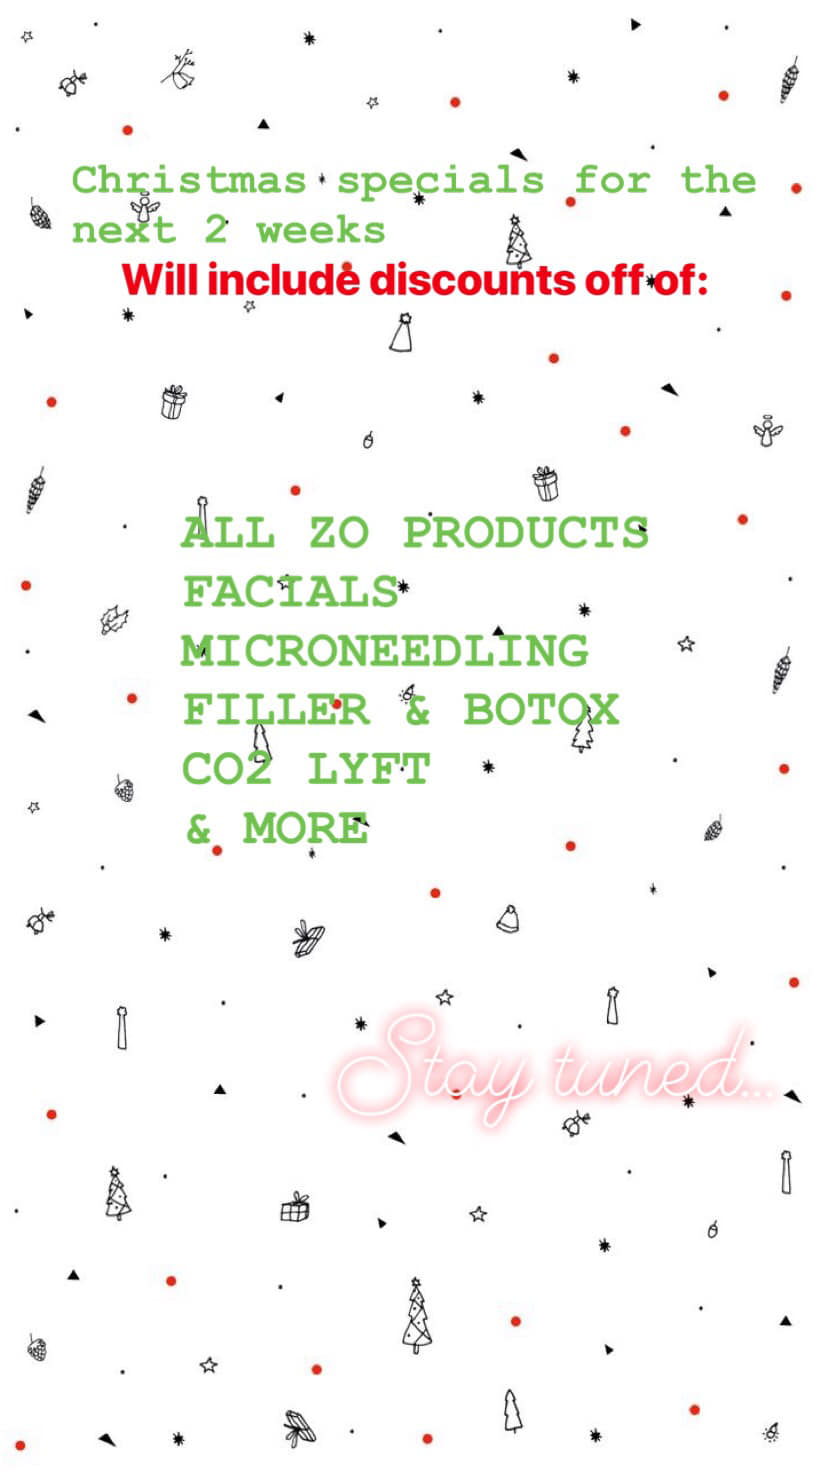 Christmas specials for the next 2 weeks - Botox Dysport Juvederm Restylane by Skin Envy MD Nashville.jpg